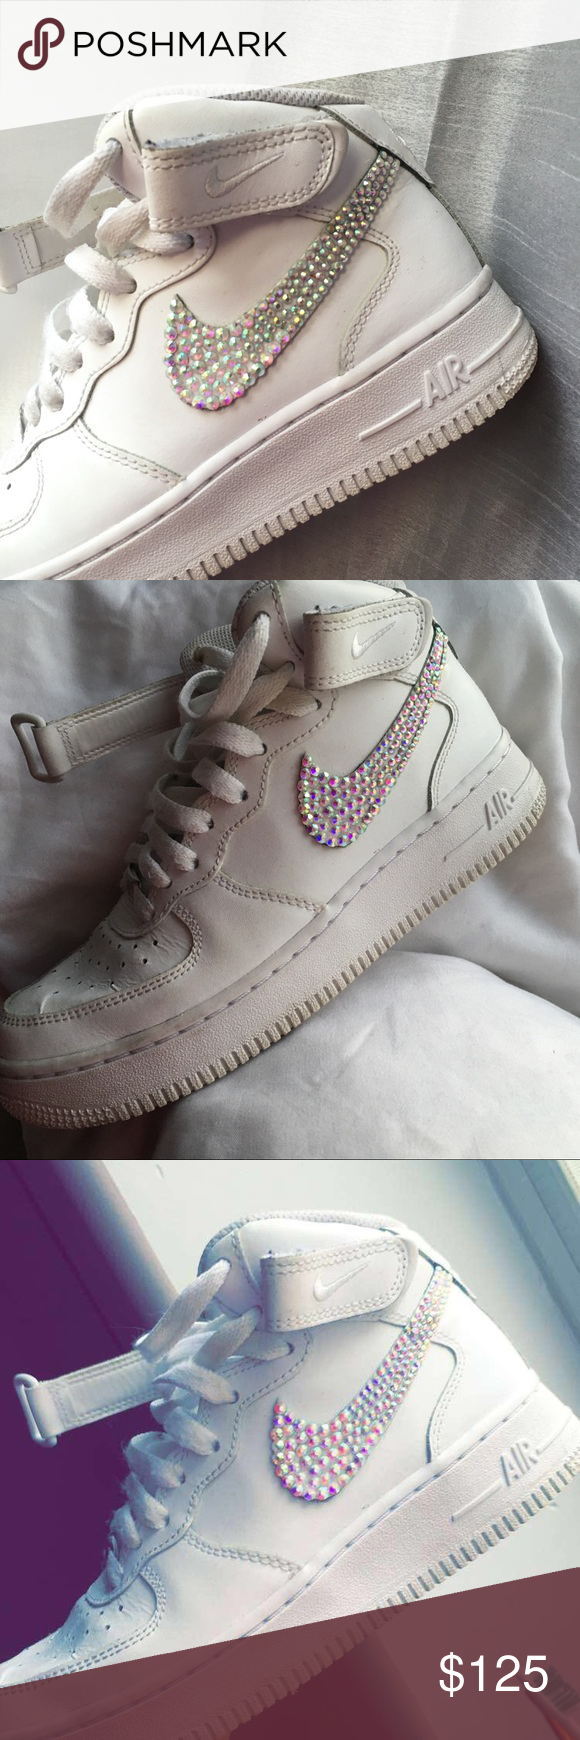 02044364c7db Customized bedazzled Nike Air Force hightops These are handmade bedazzled  Nike Air Force sneakers They re hightop